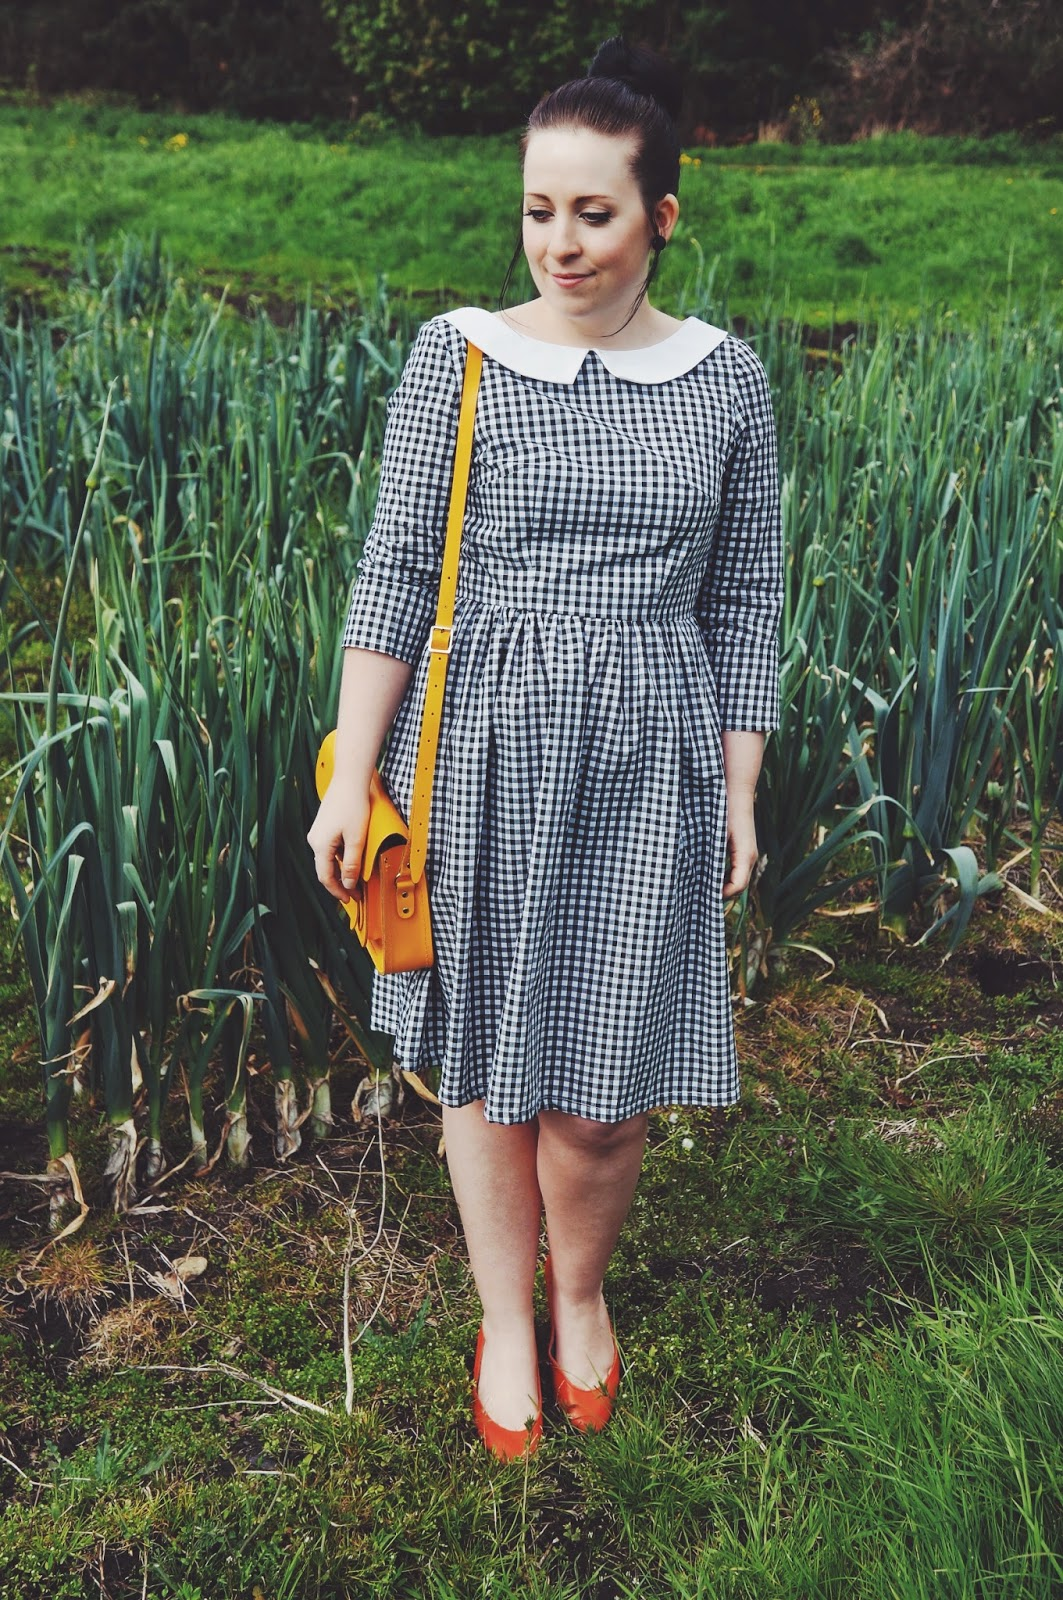 GINGHAM AND BRIGHTS